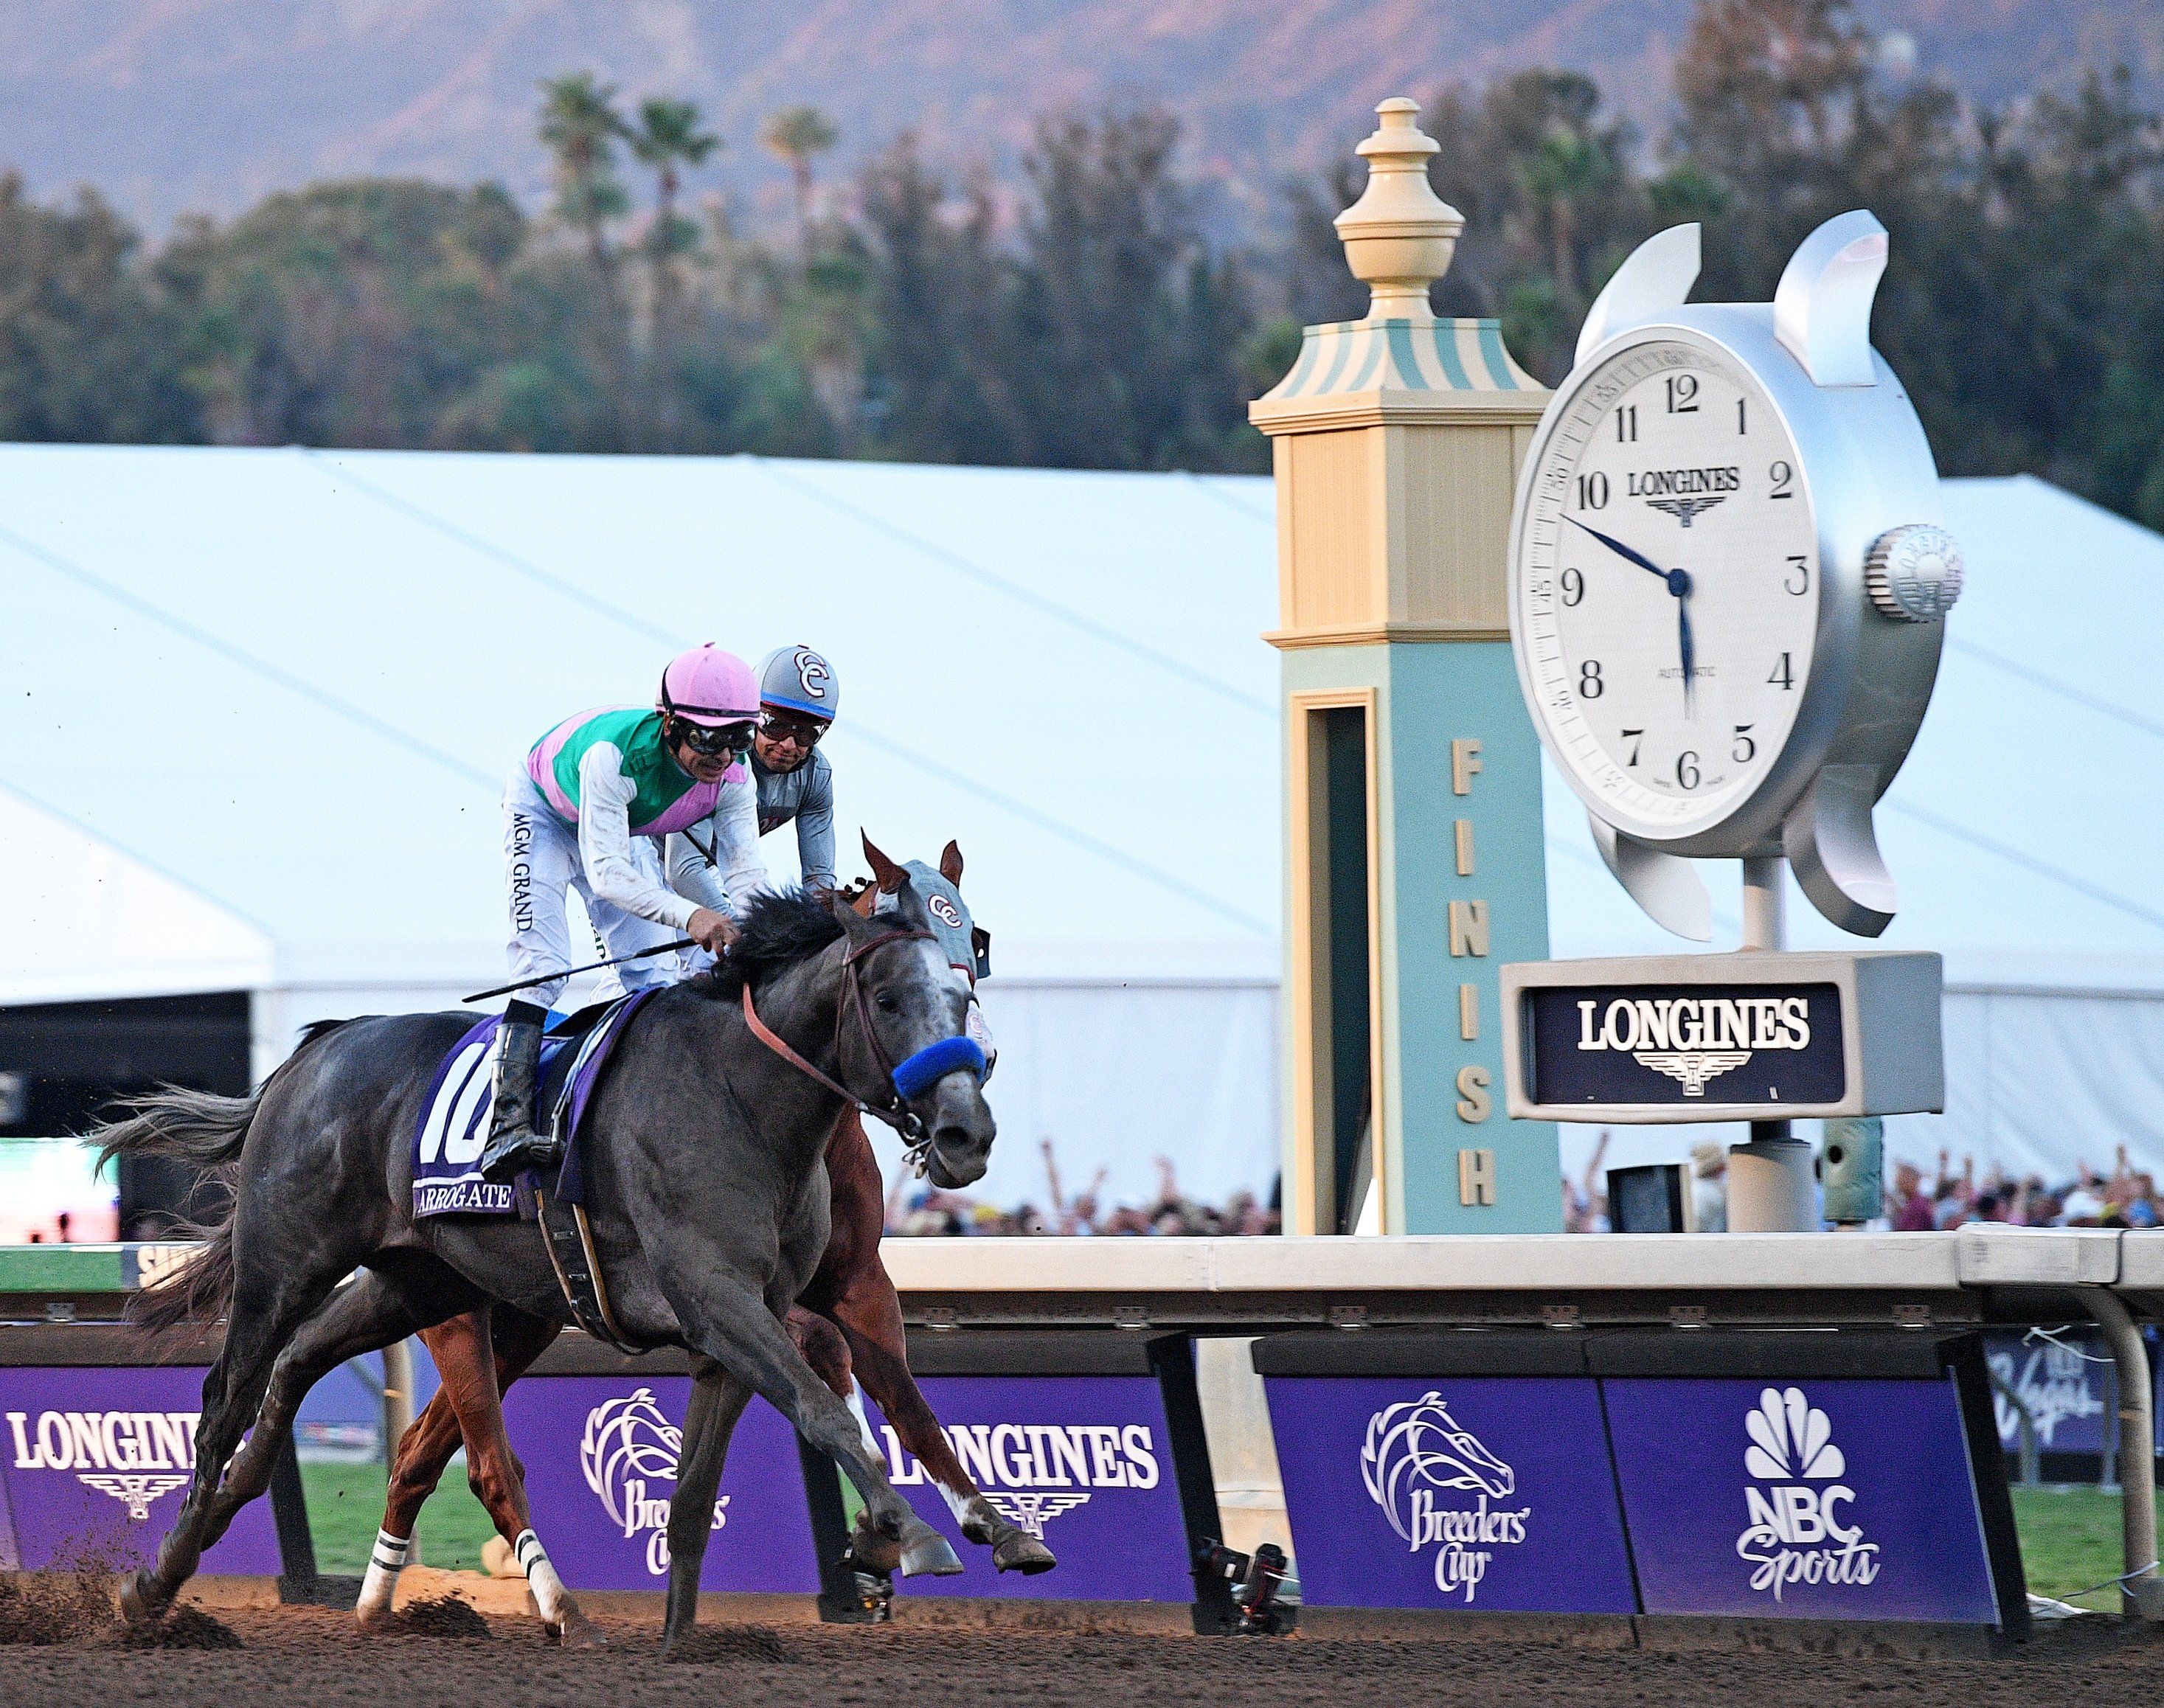 Arrogate winning the Breeders' Cup Classic 2016 © Racingfotos.com